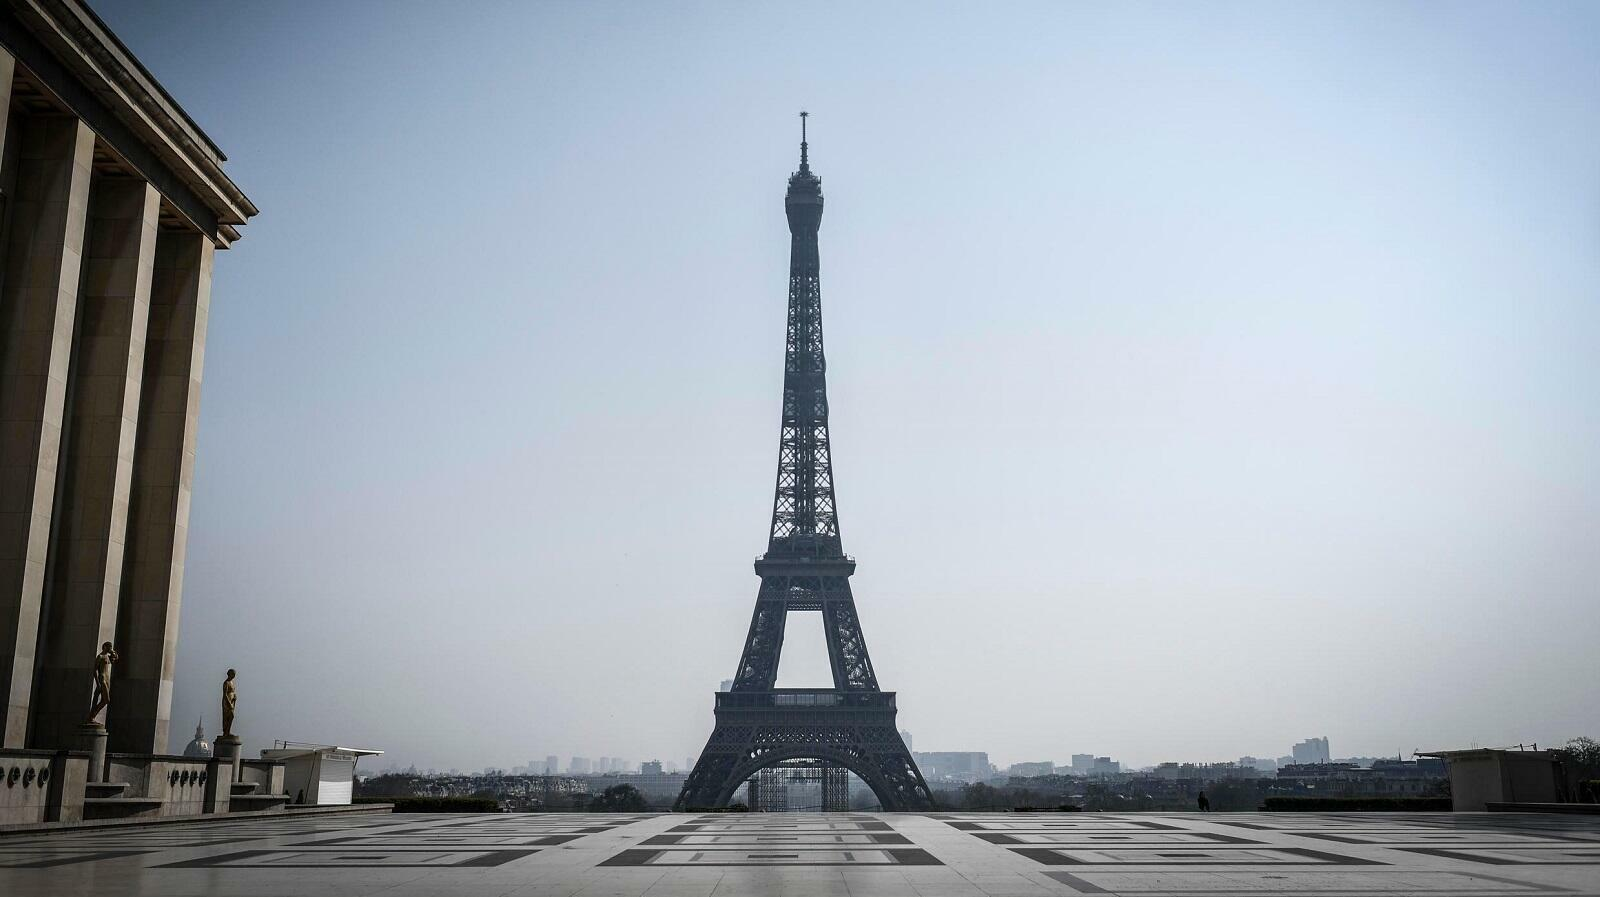 Lockdown measures stifled economic activity in France, in particular the crucial tourism industry.